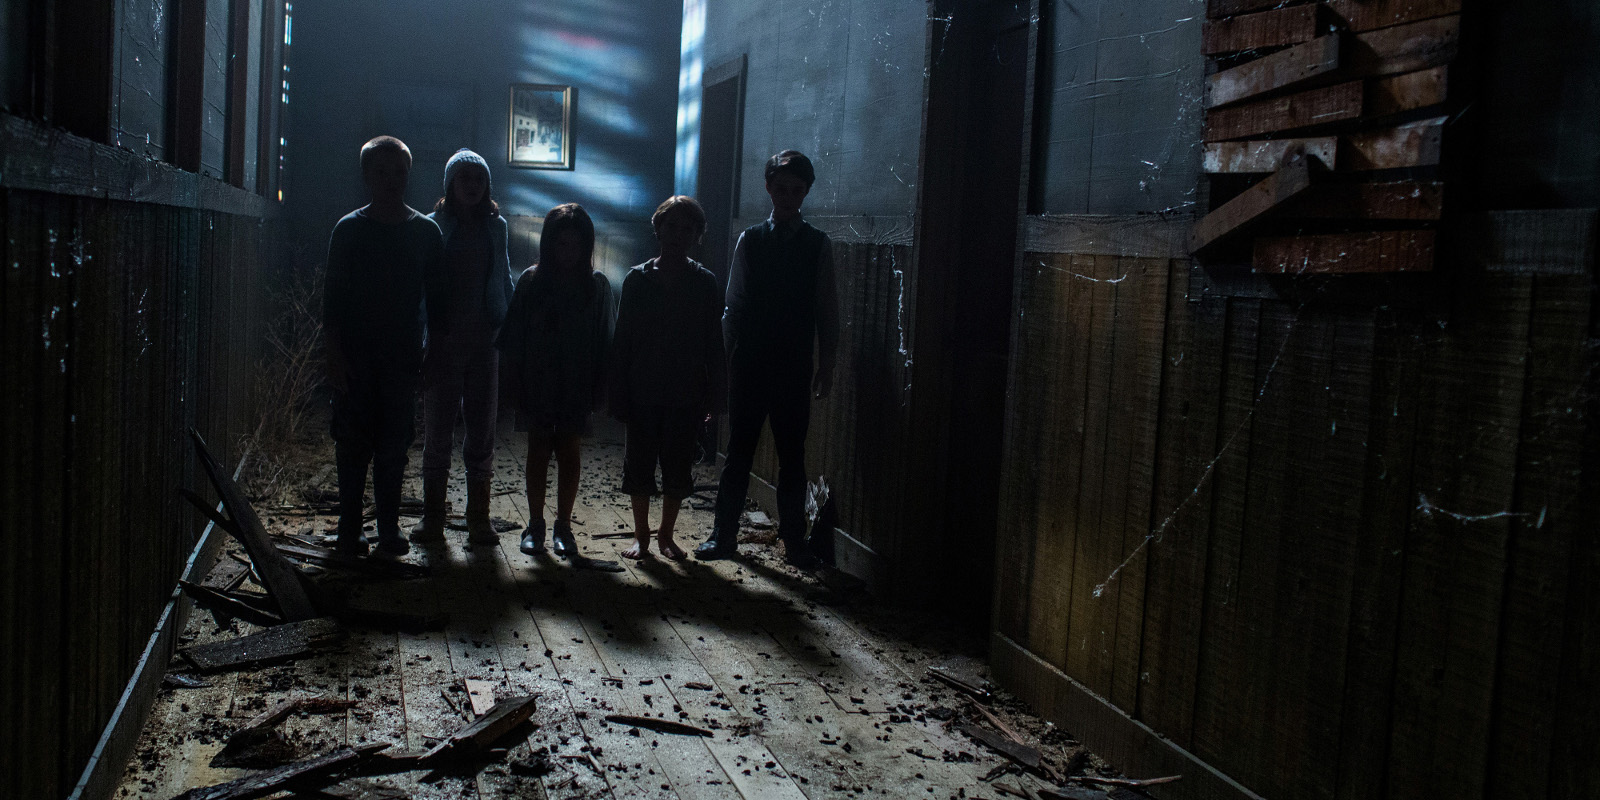 Un'inquietante immagine dell'horror Sinister 2